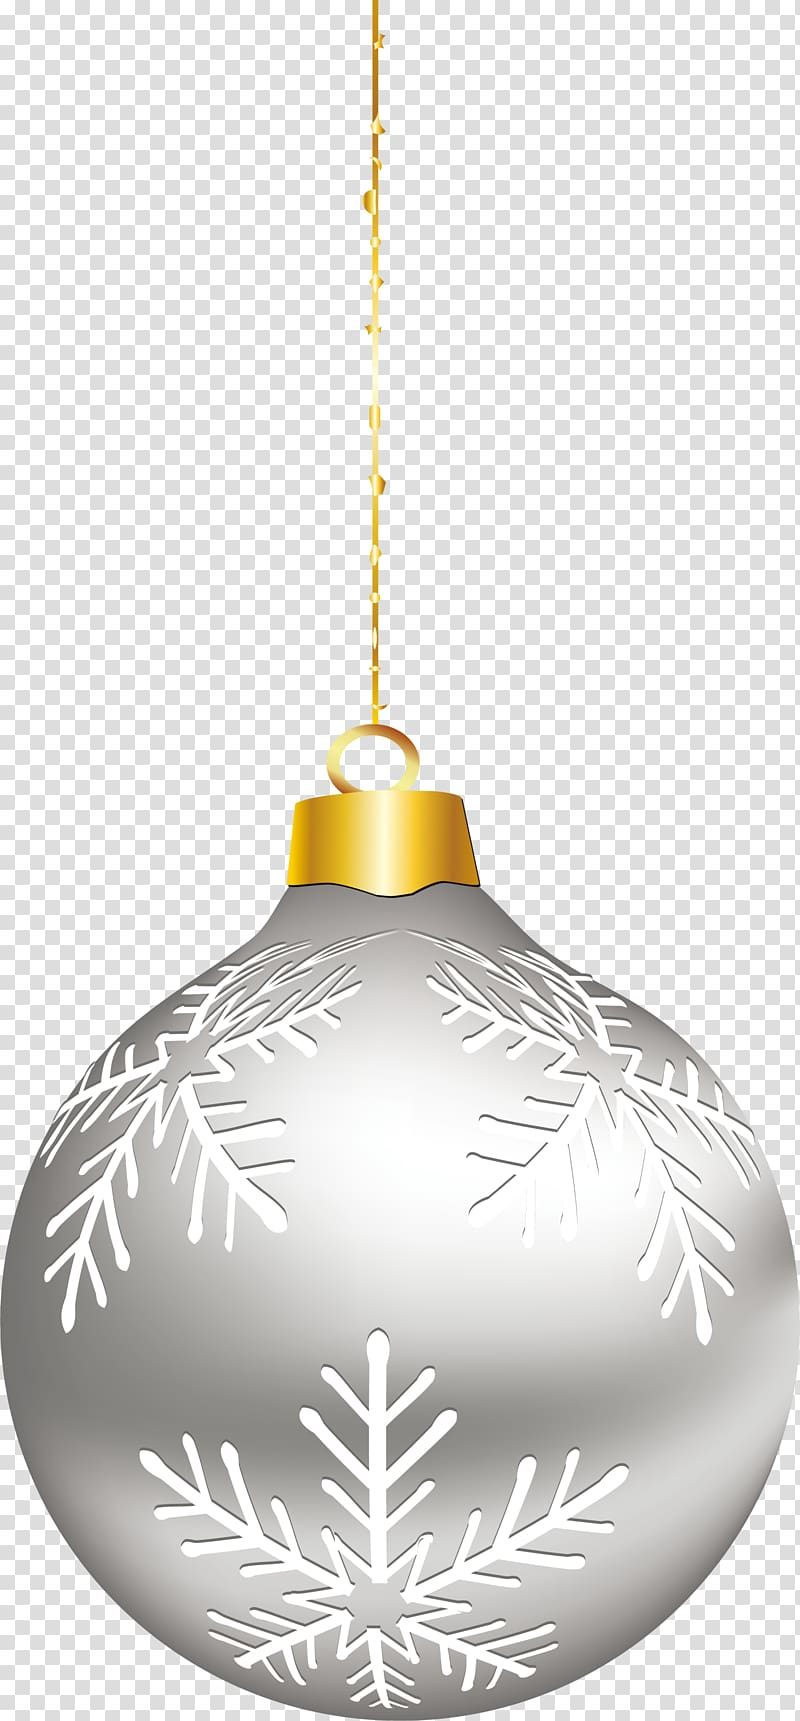 Christmas ornament Silver, Simple silver ornaments.